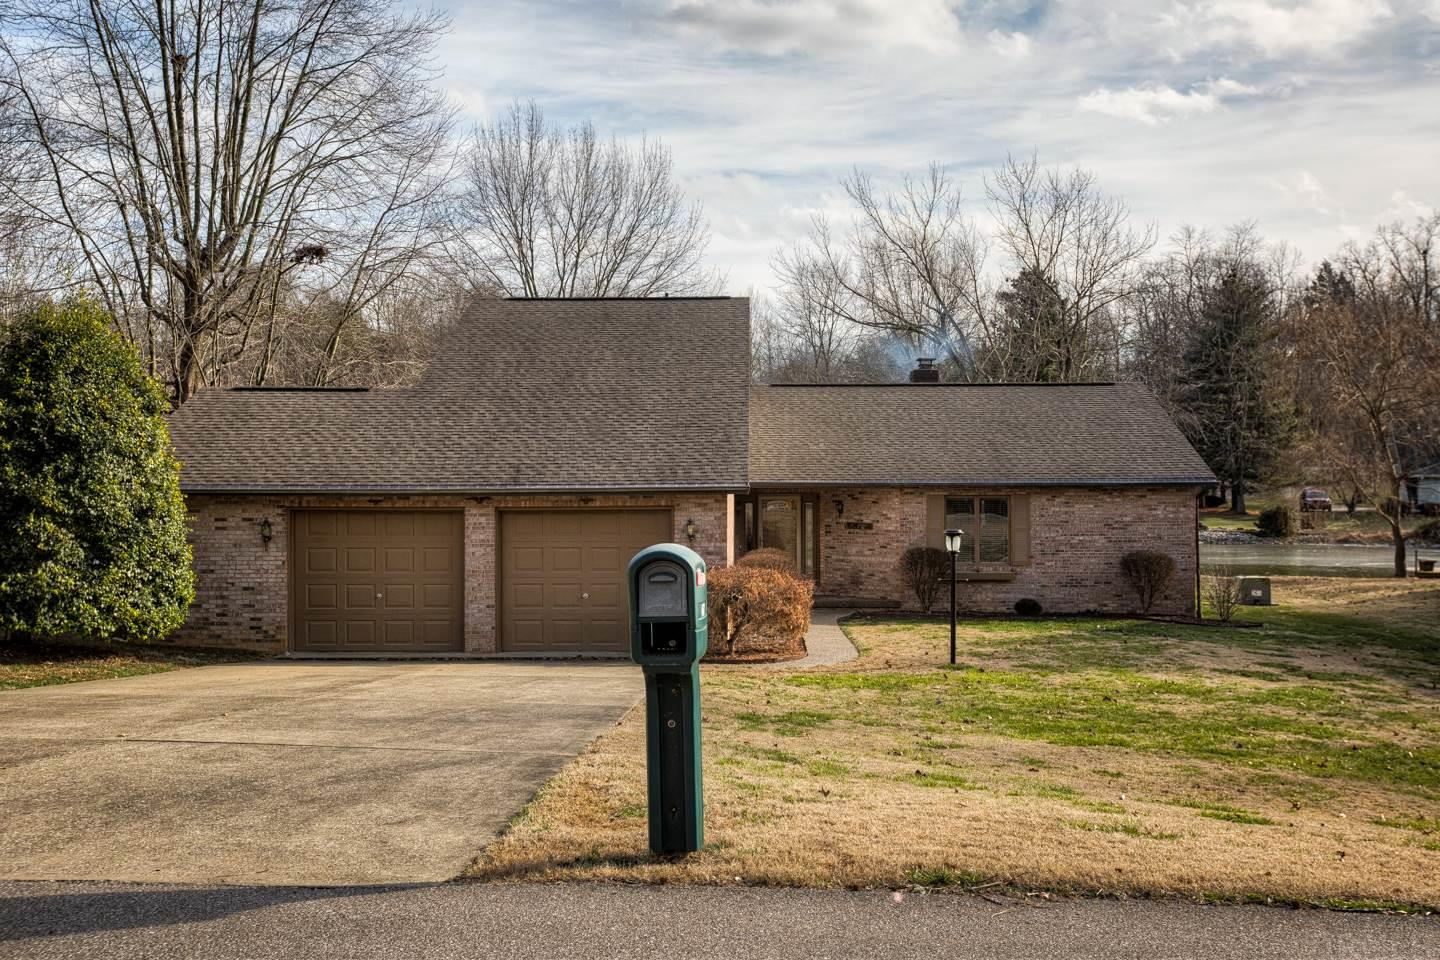 Beautiful Lake Front home on 1 1/2 lots with private dock! Walking distance from beach and rec center.  Beautifully redone 2 Bed 2 Bath home, no need to update.  If you are retired or just starting out, this home is a must see.